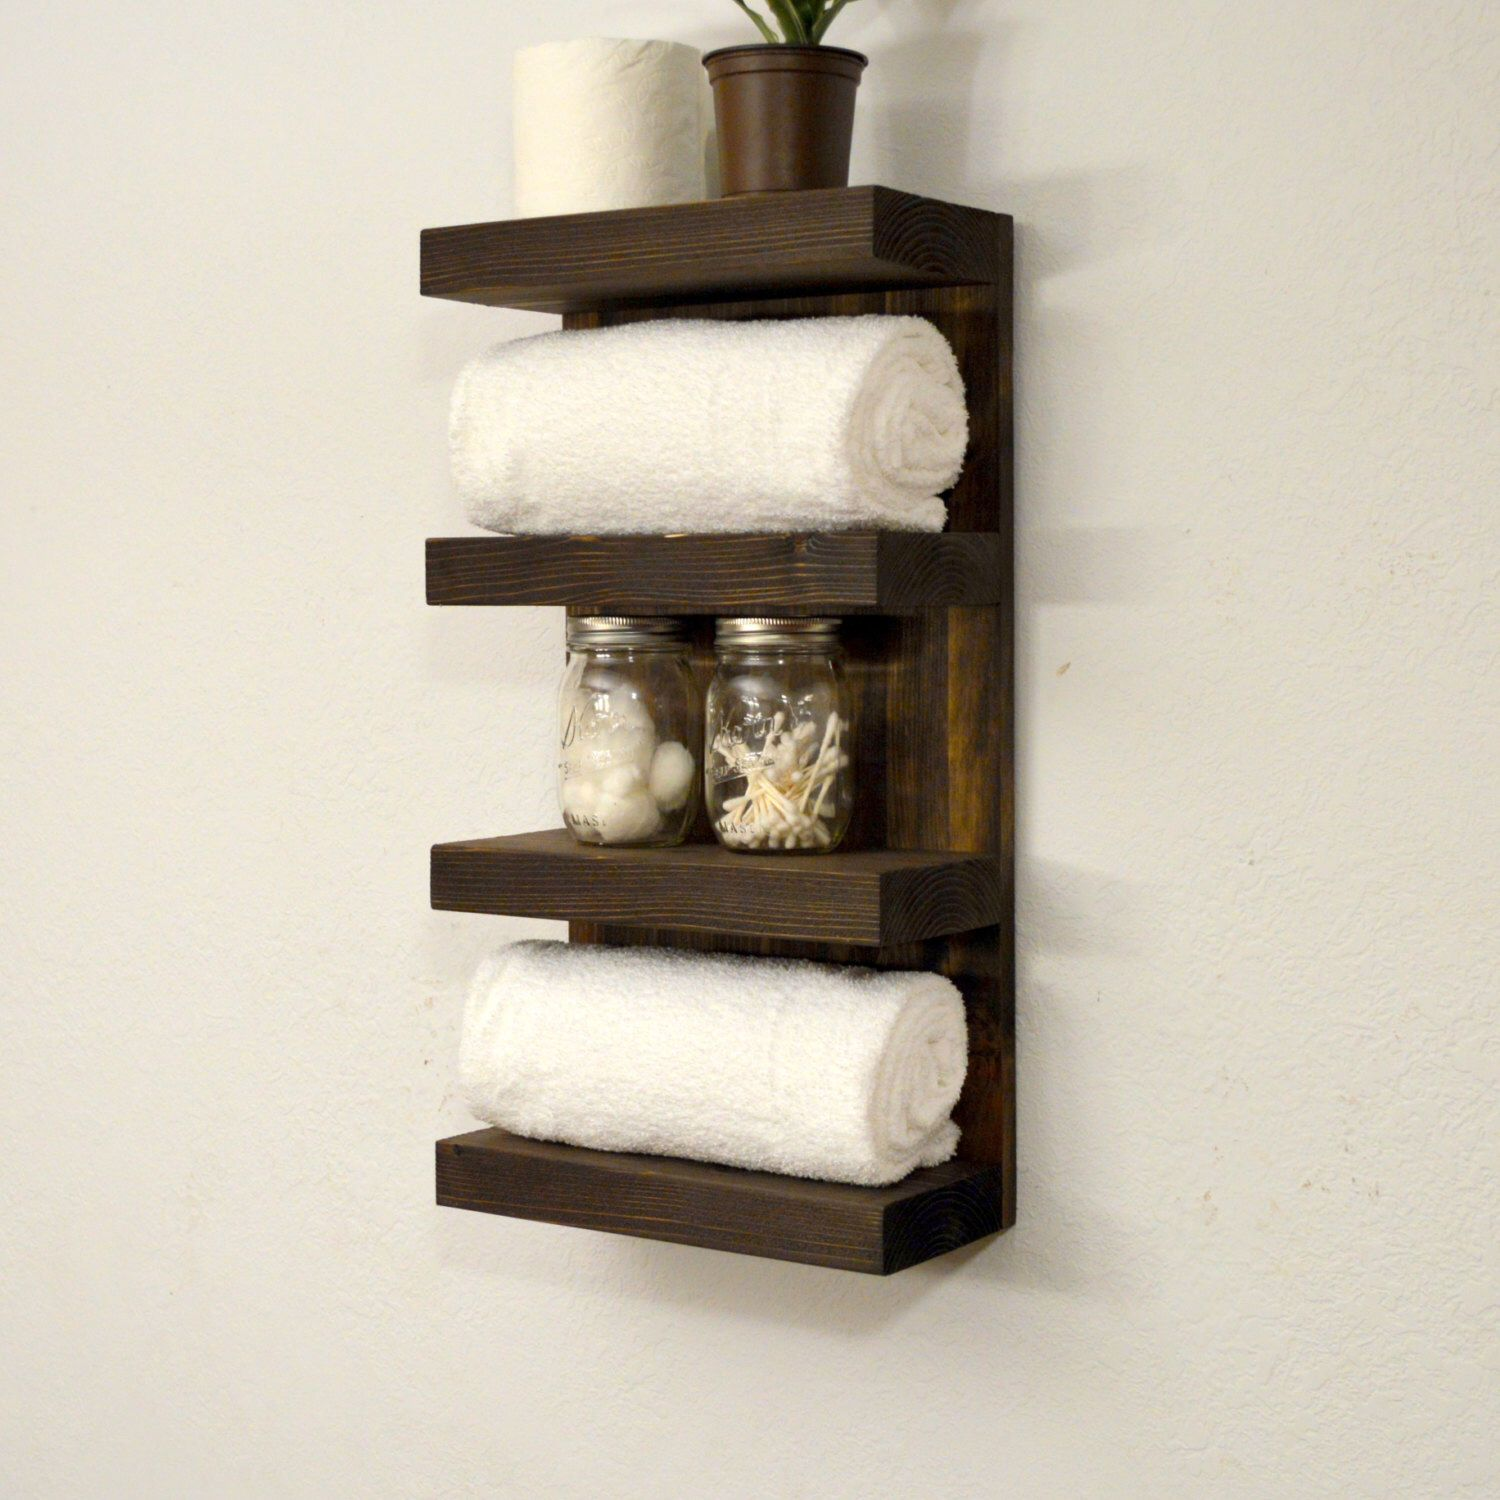 Bathroom Towel Rack 4 Tier Bath Storage Floating Shelf Hotel Style